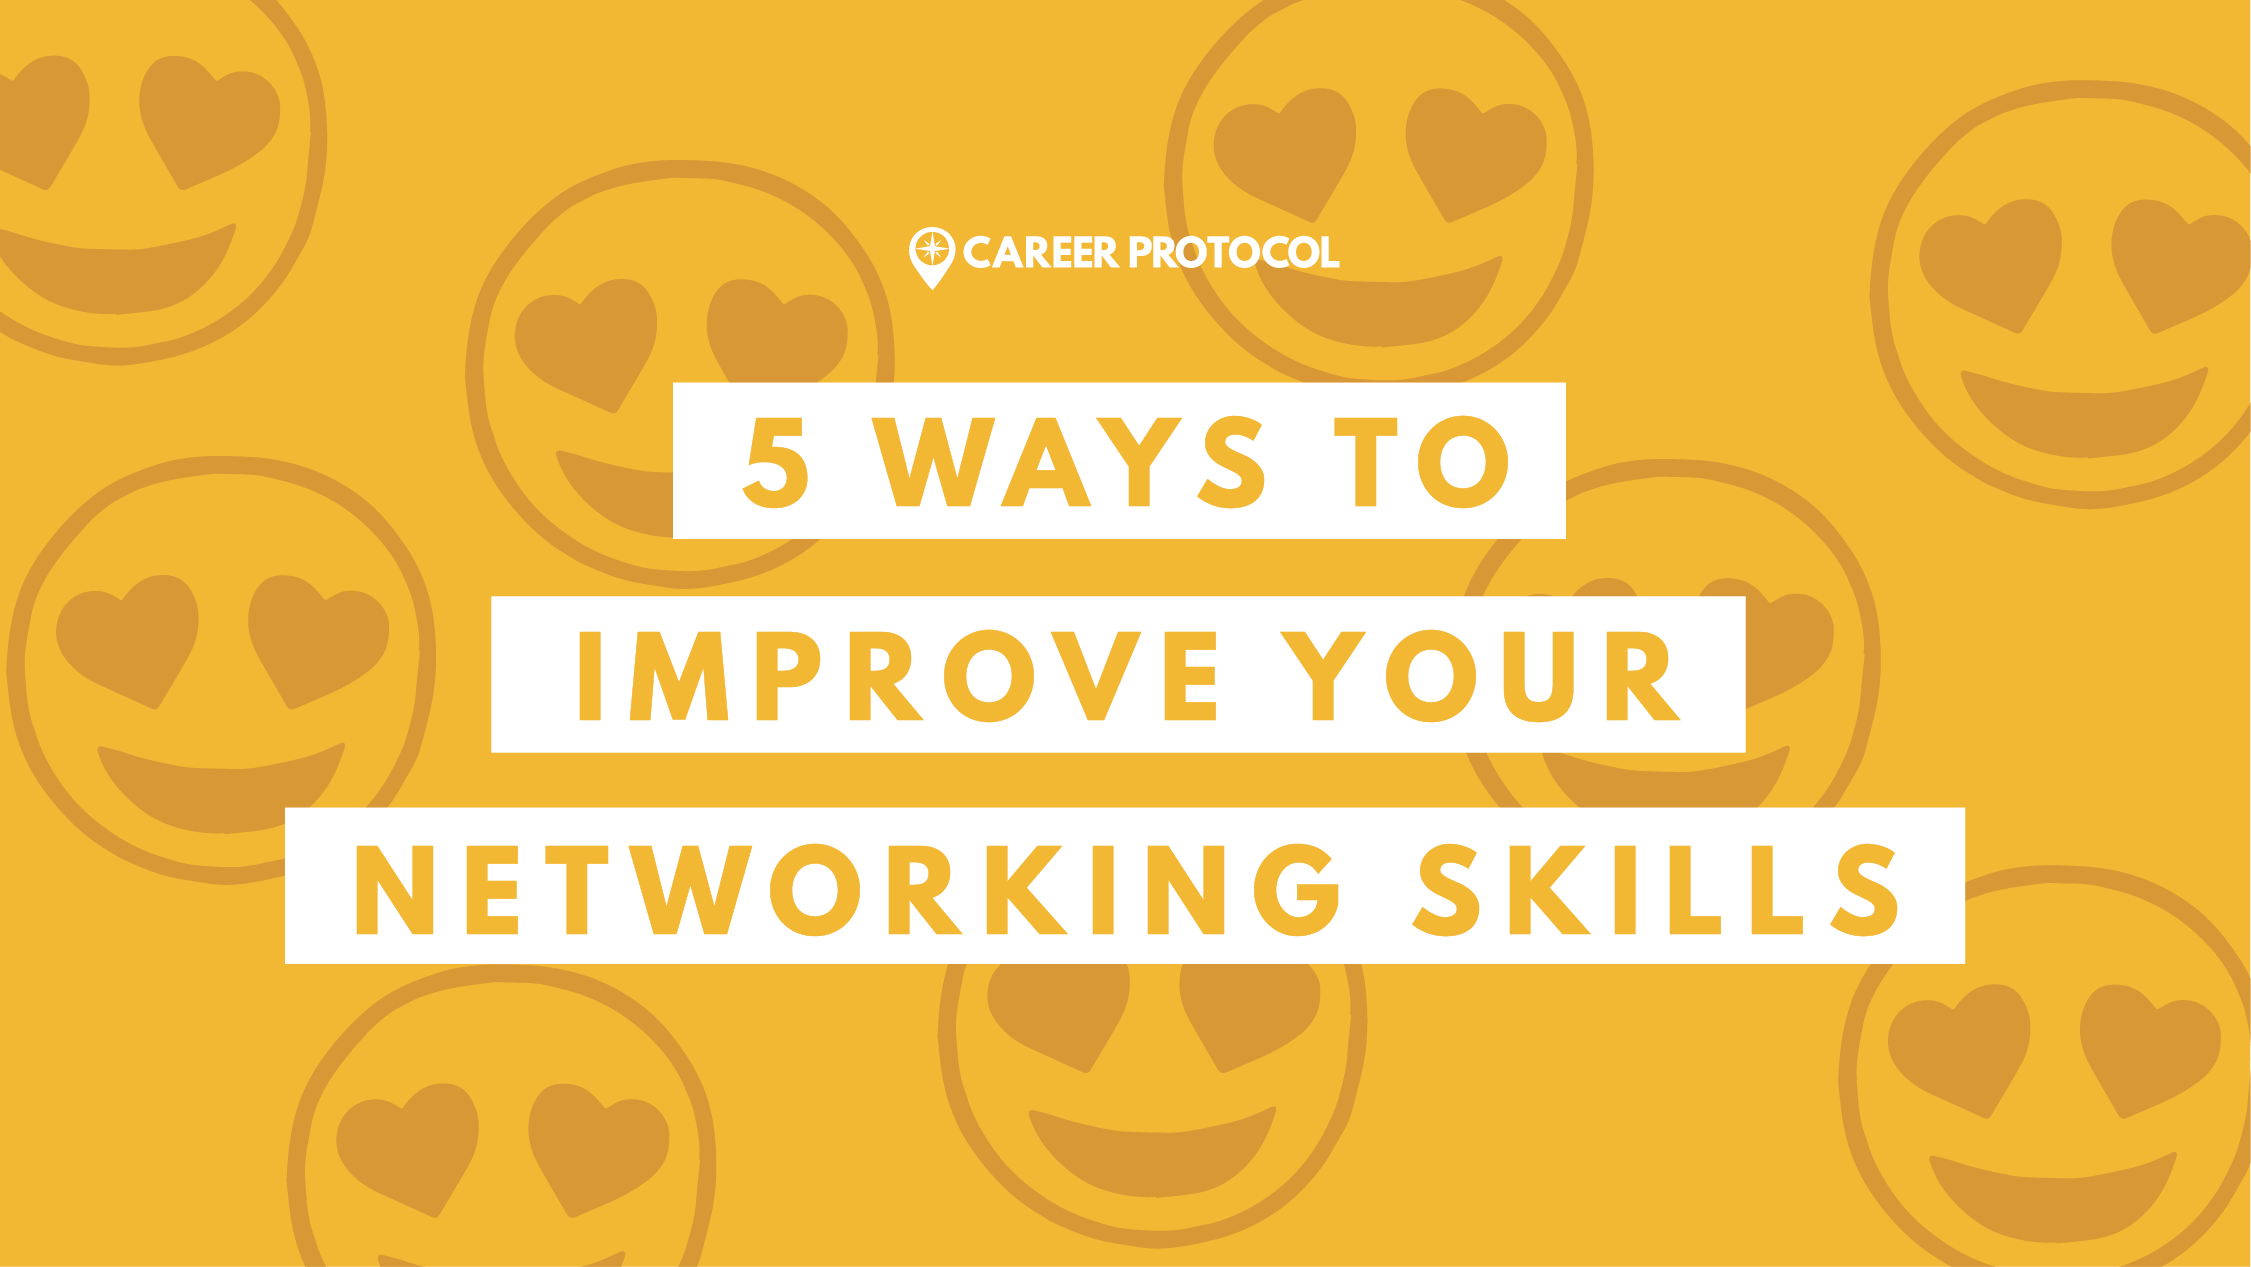 5 ways to improve your networking skills-01